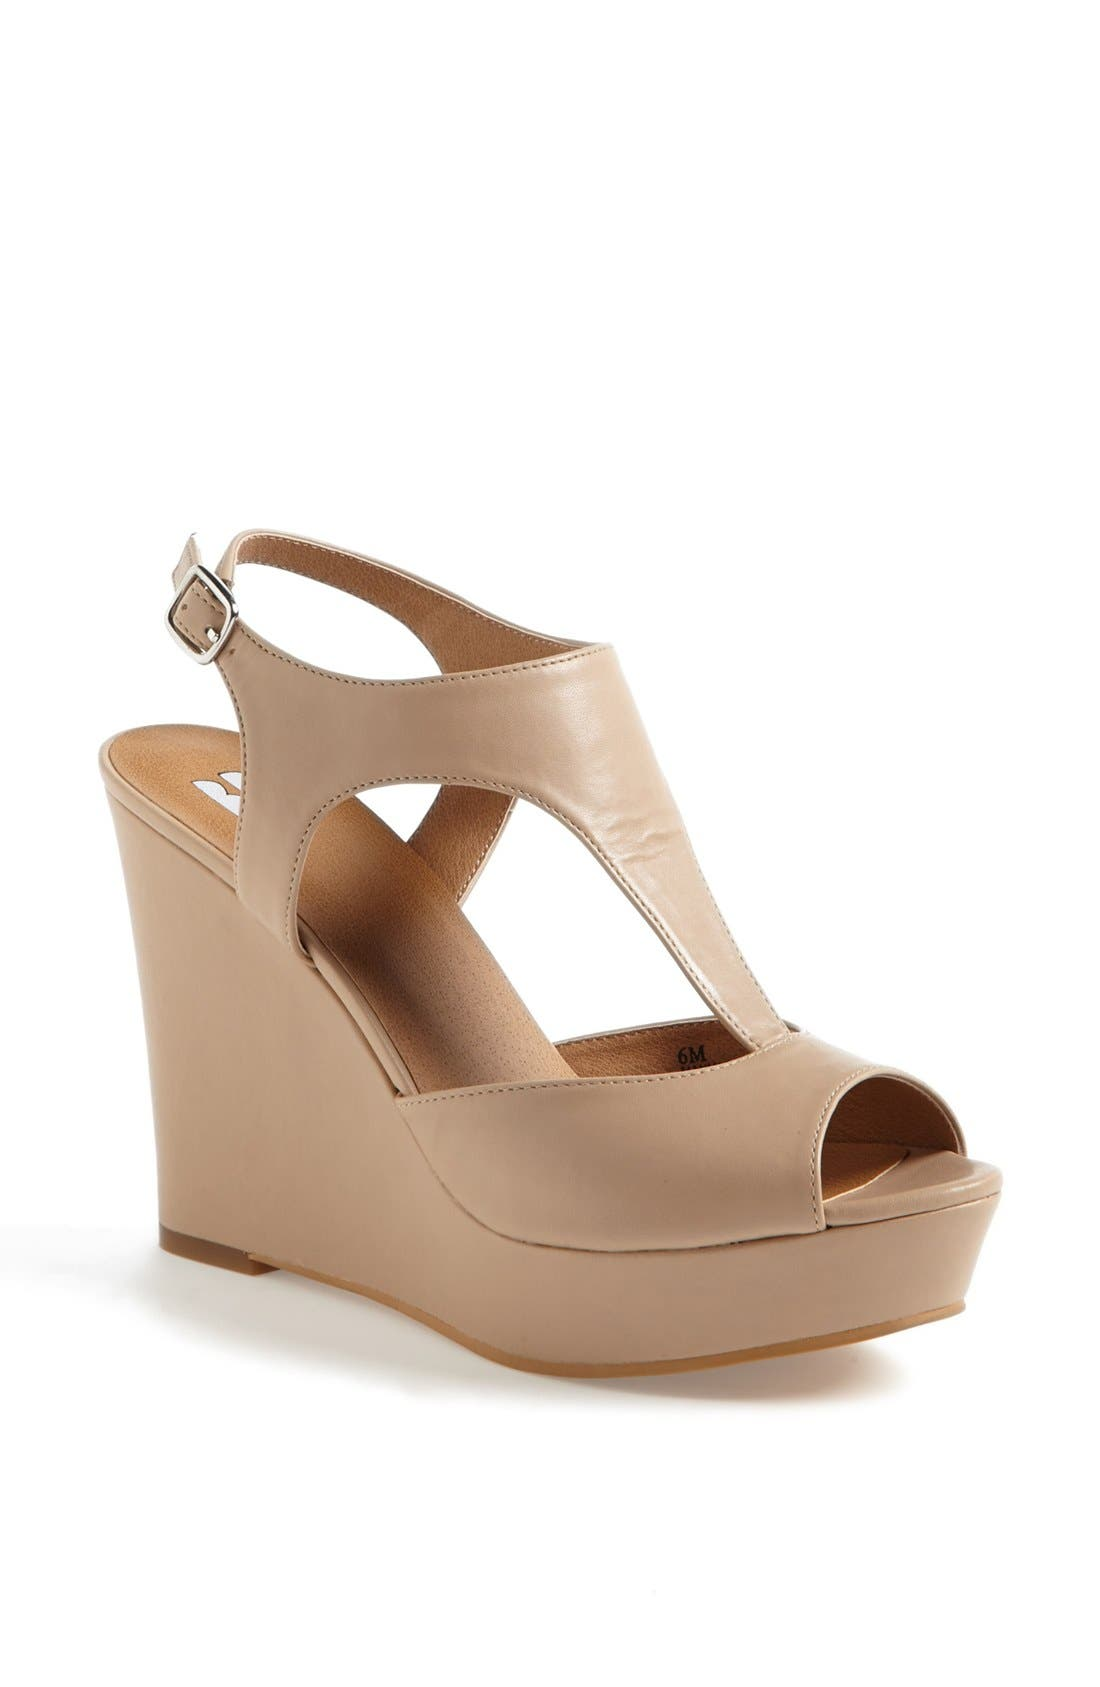 Main Image - BP. 'Springs' Wedge Sandal (Women)